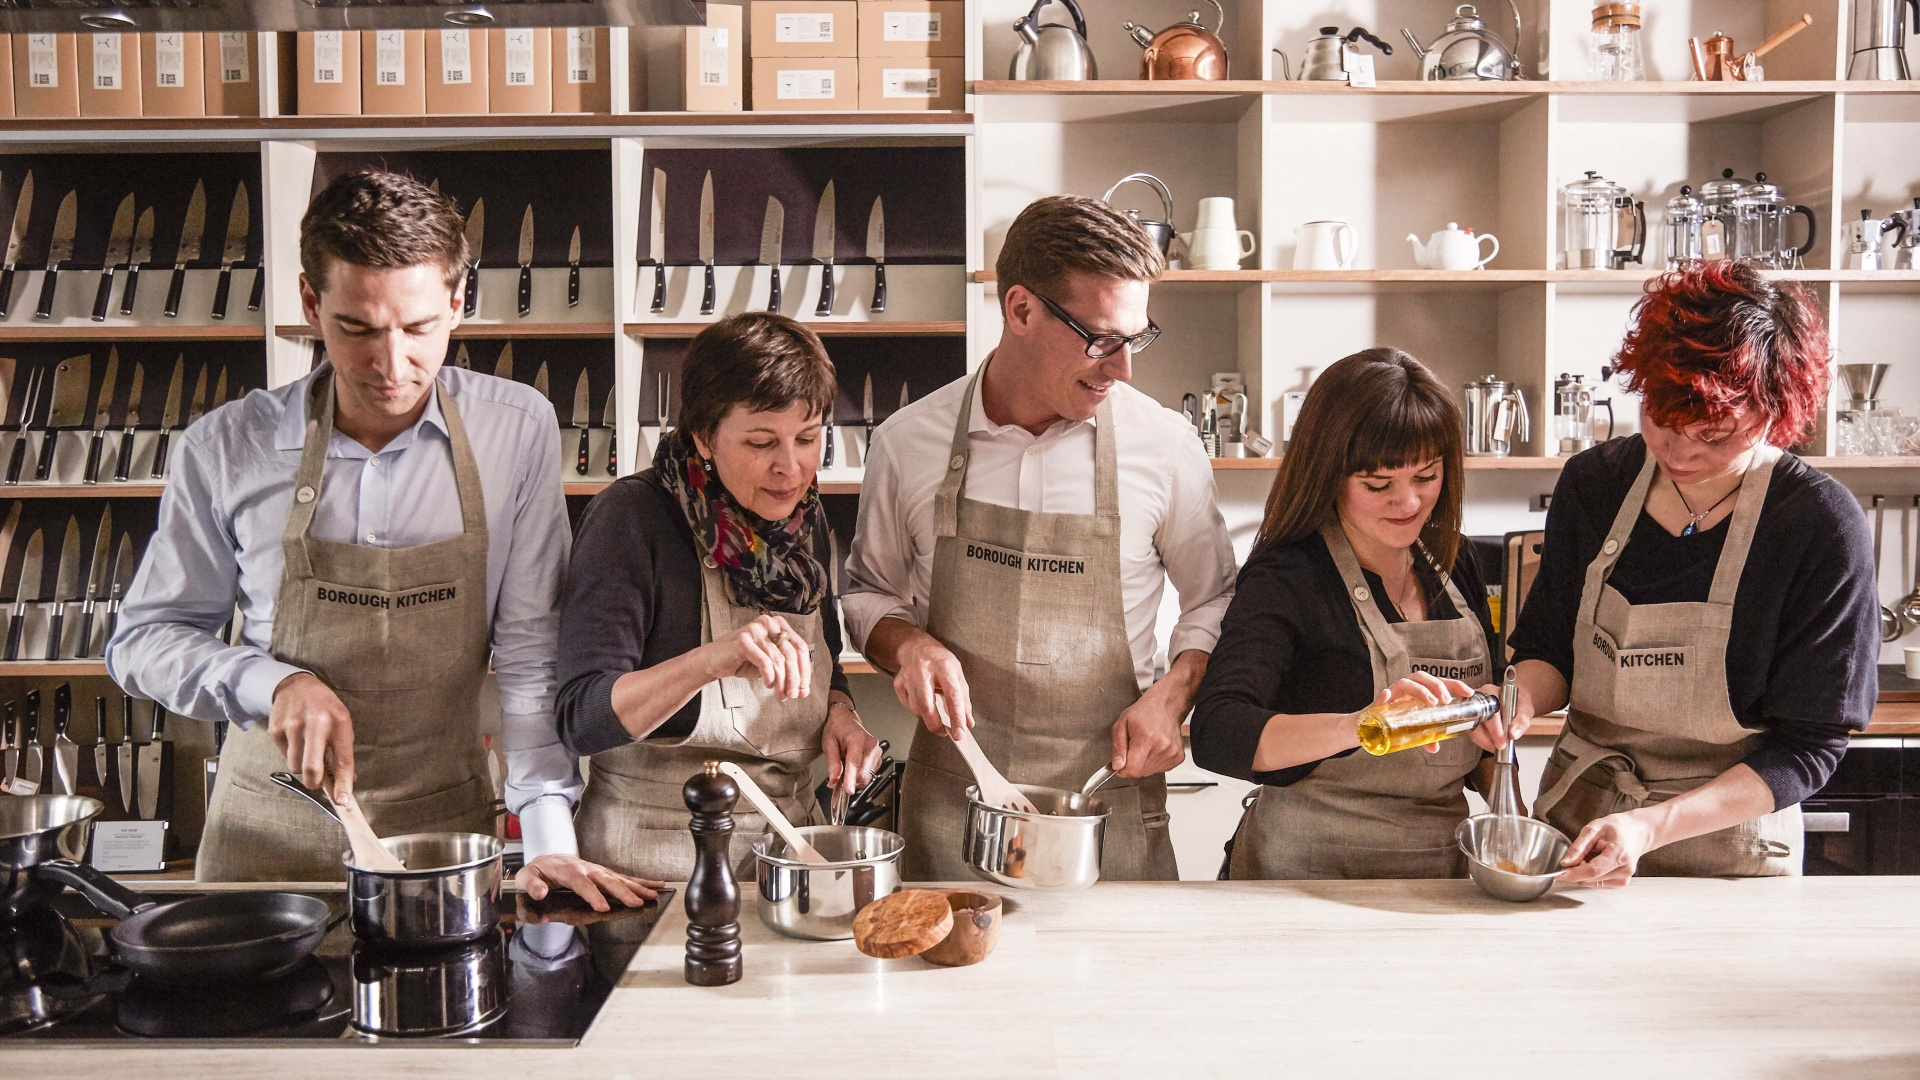 Best cookery classes in London: Borough Kitchen Cook School, Hampstead